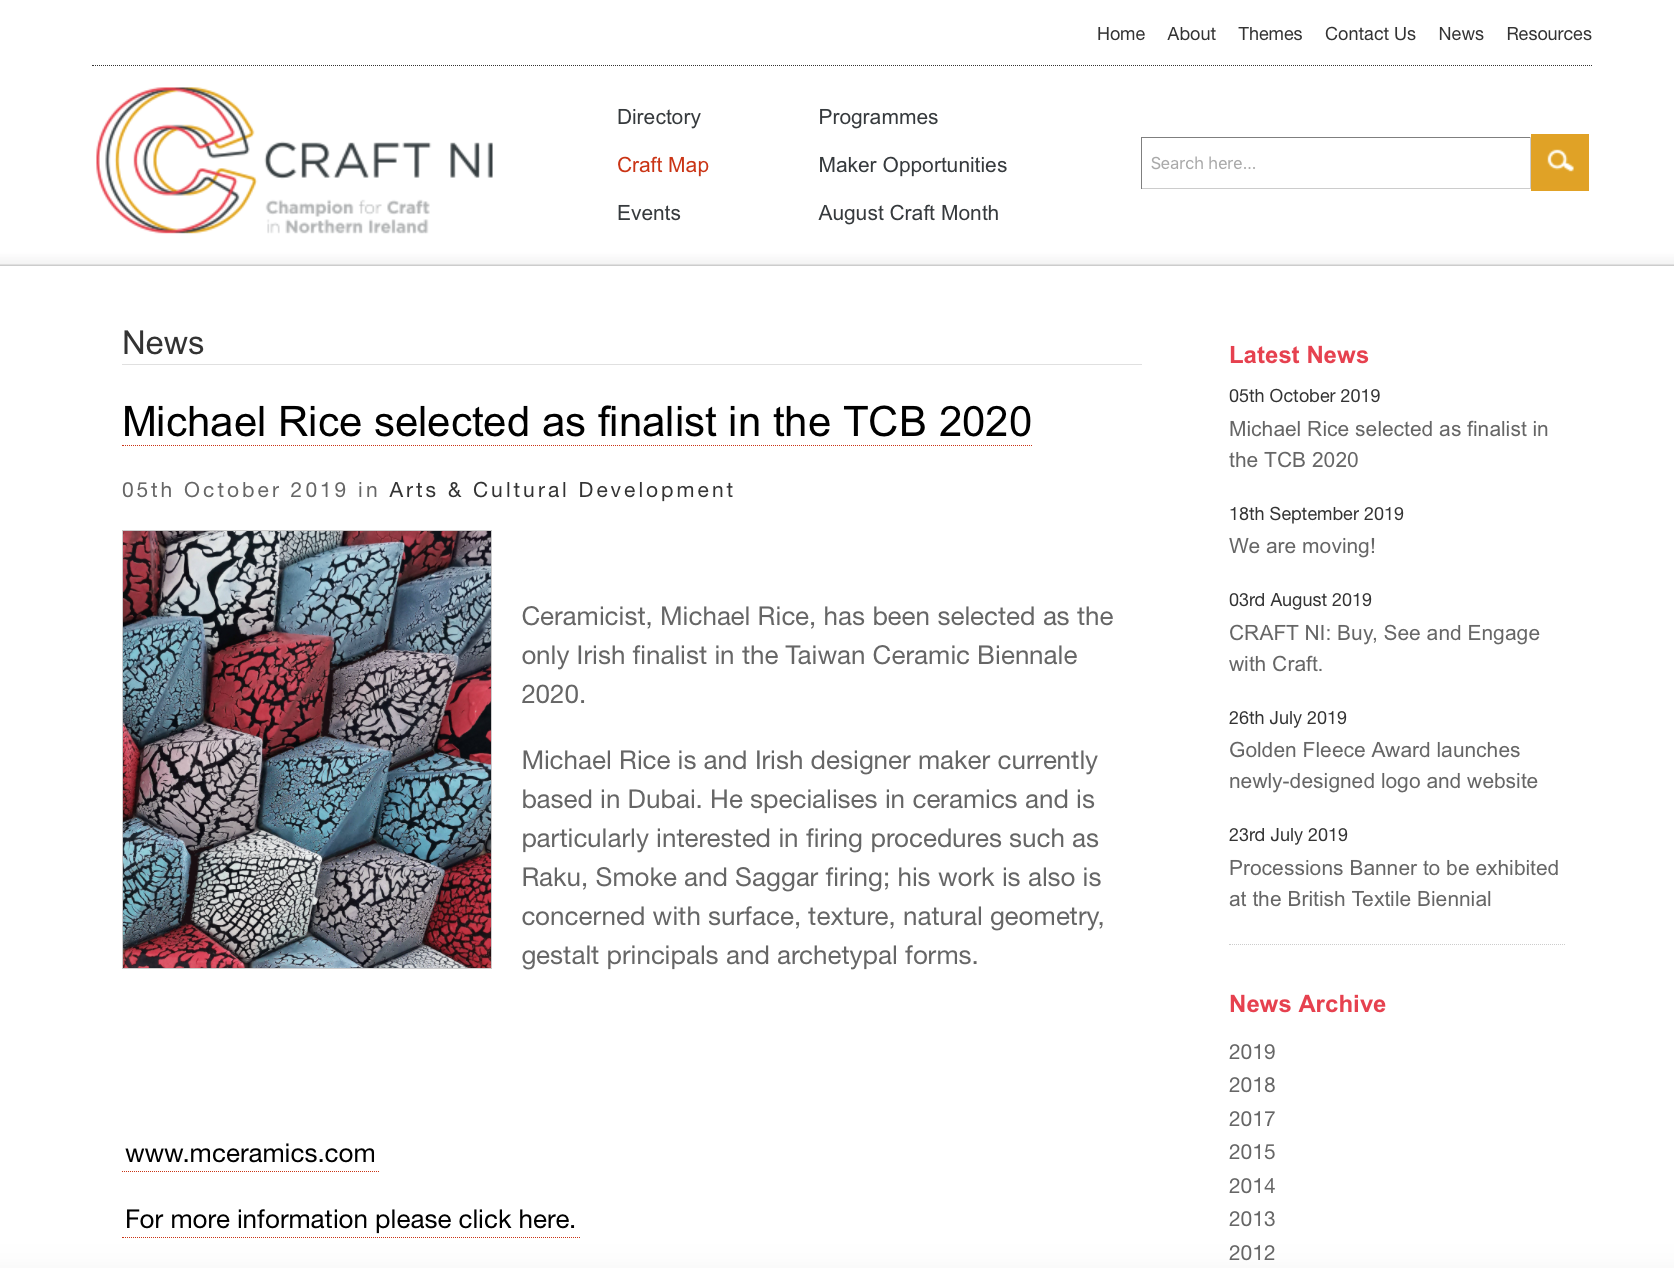 http://www.craftni.org/news-article/michael-rice-selected-as-finalist-in-the-tcb-2020  Craft NI posting my selection as a finalist for the Taiwan Ceramic Biennale 2020